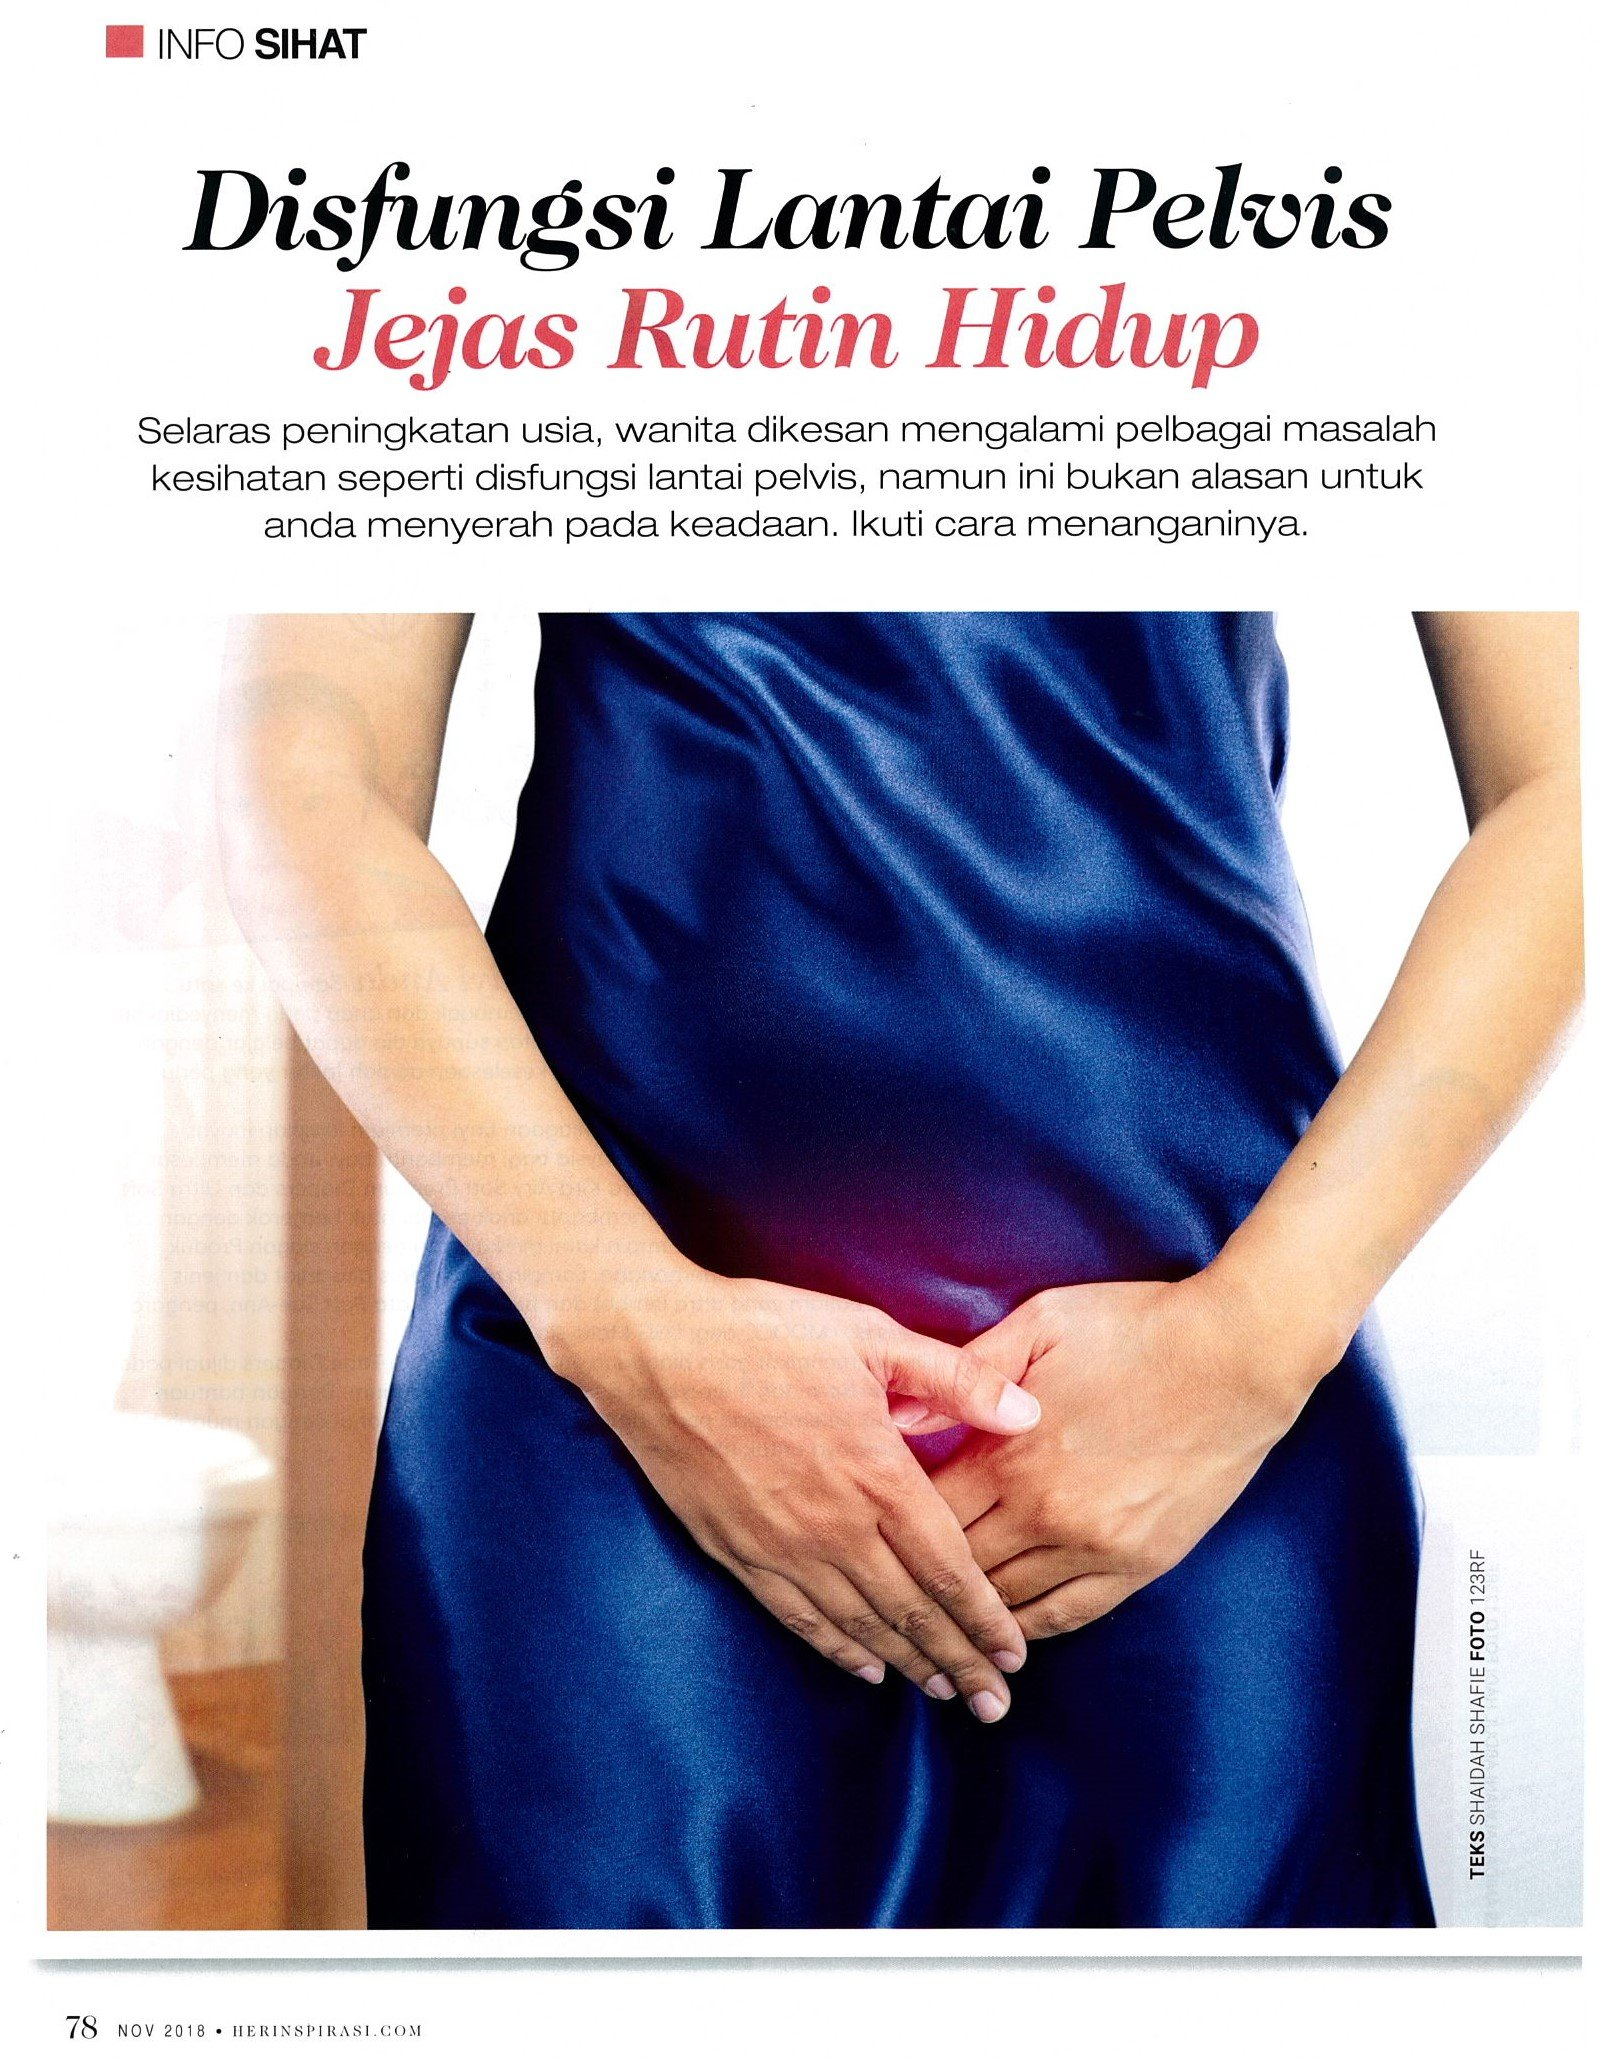 Disfungsi Lantai Pelvis Jejas Rutin Hidup<br/><span class='subtitle' style='font-style:italic; color: #636363; text-weight:300; font-size:11px; line-height: 10px;'>By Jelita Magazine (November 2018 edition)</span>